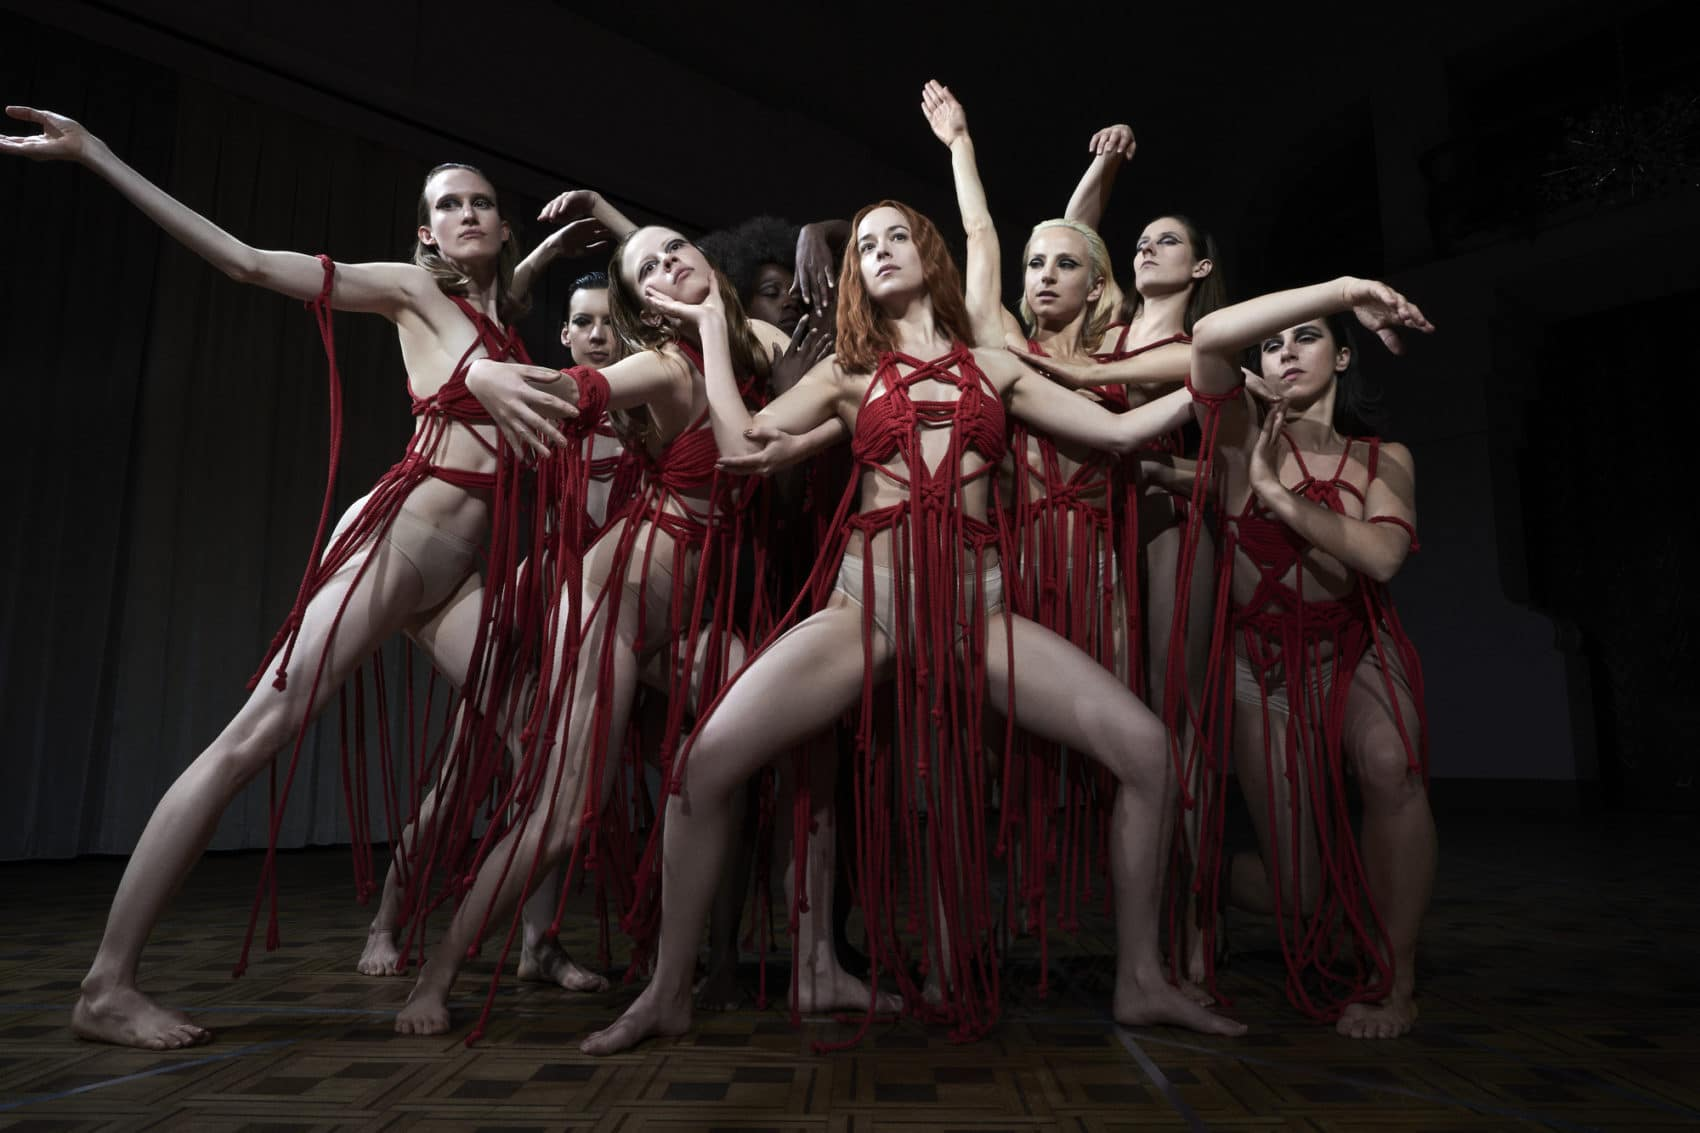 Suspiria – Critique